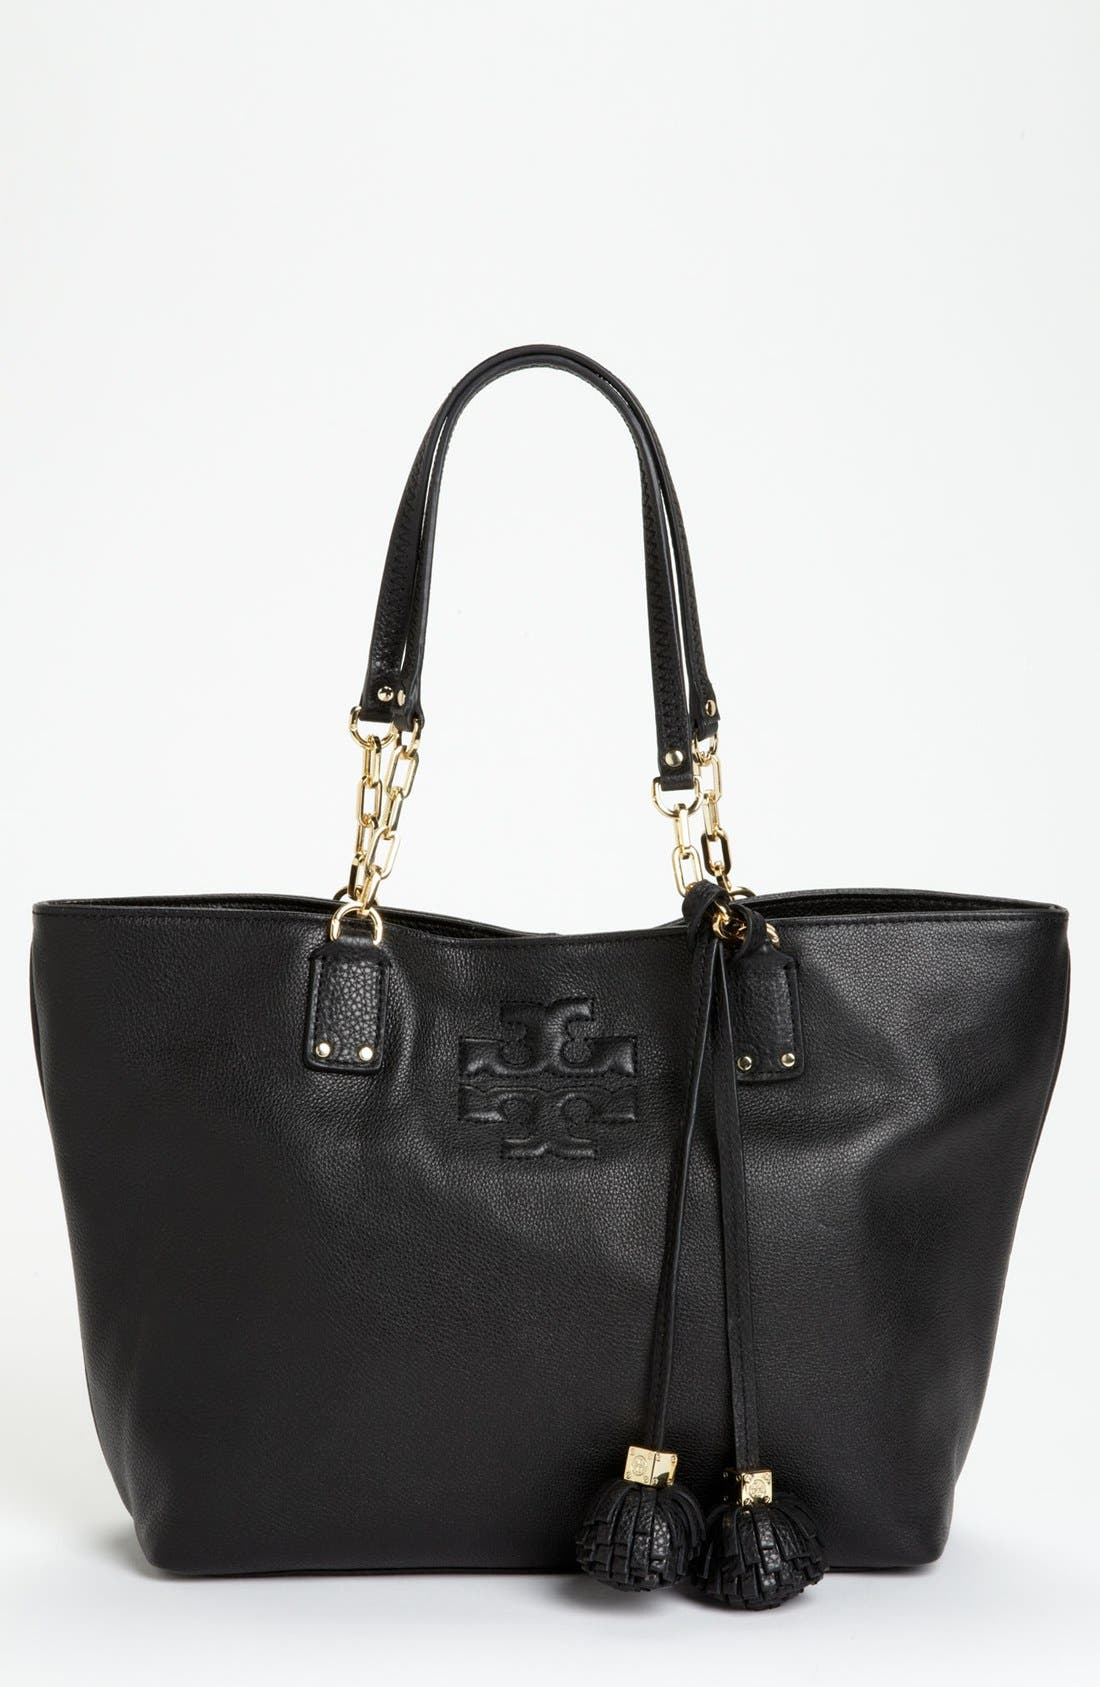 Alternate Image 1 Selected - Tory Burch 'Thea - Small' Leather Tote